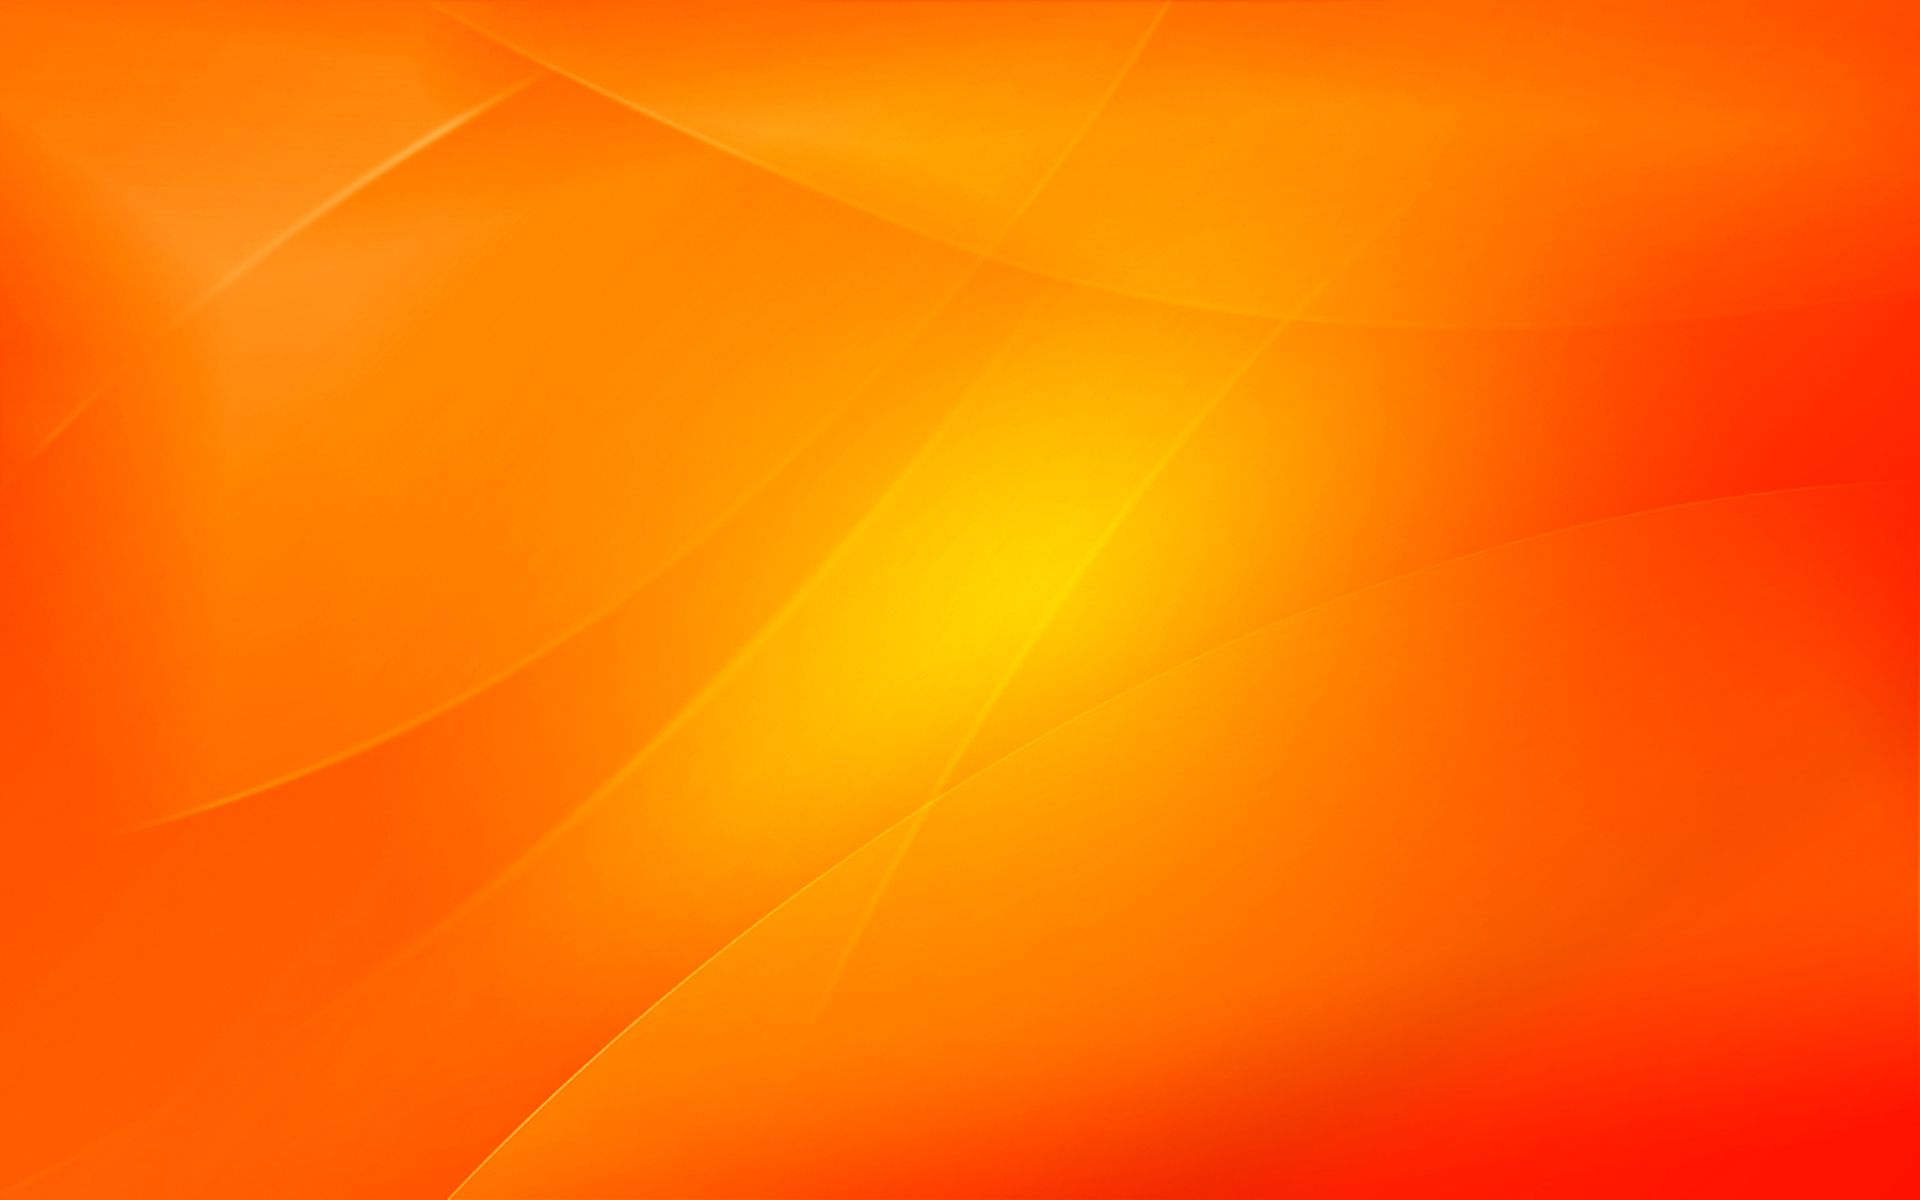 Cool orange background   SF Wallpaper 1920x1200